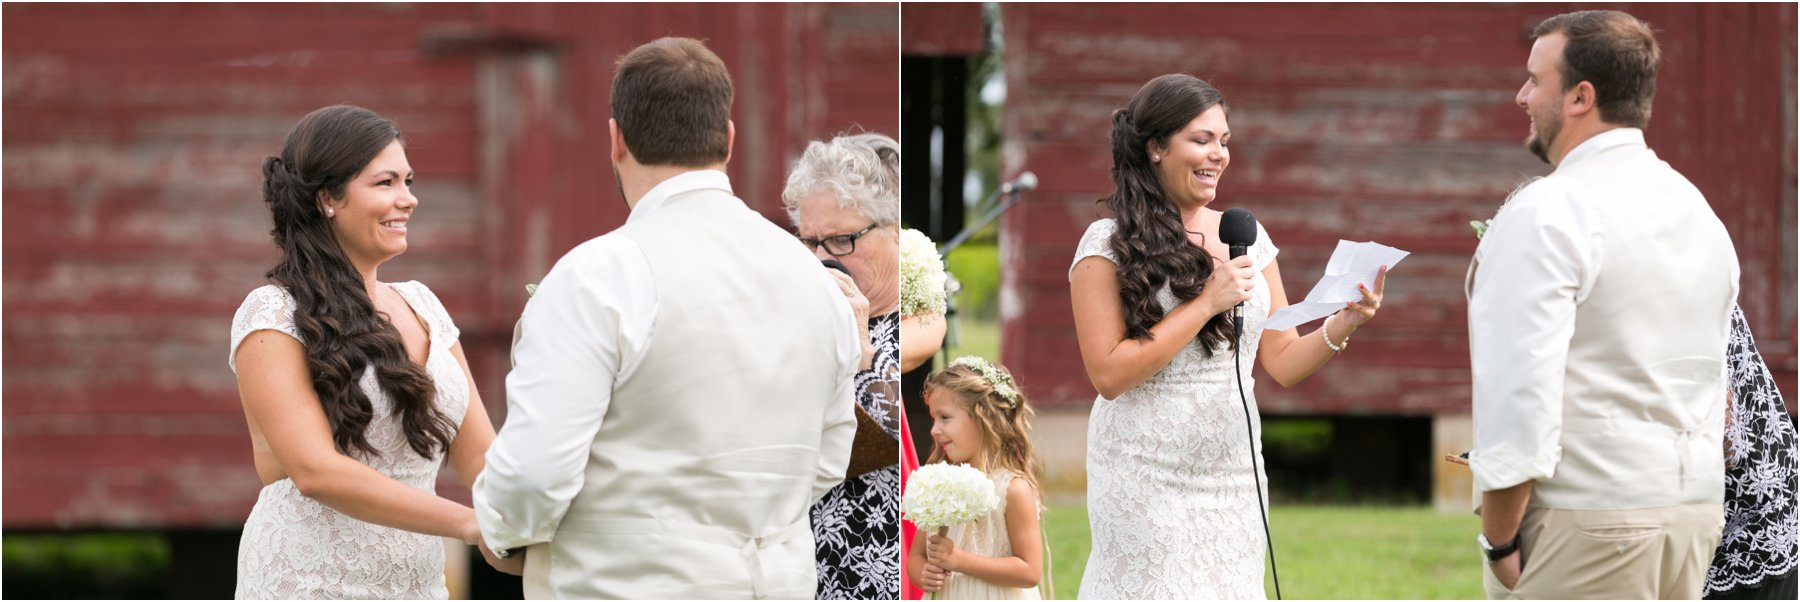 richmond_ wedding_belle_isle_Jessica_ryan_photography_0073